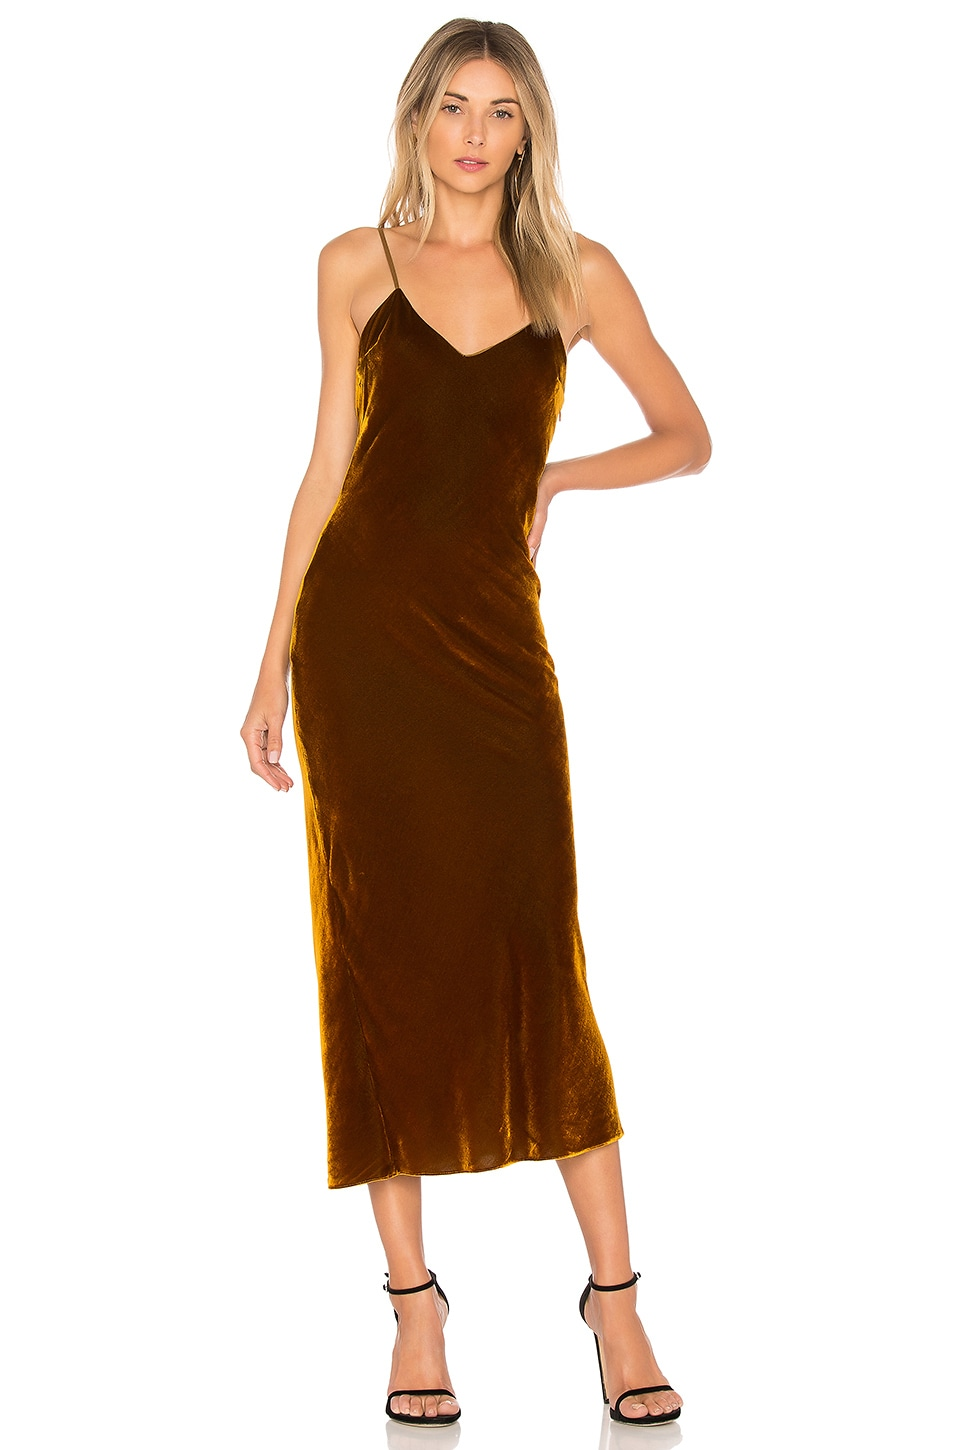 DE LA VALI Cobain Dress in Spice